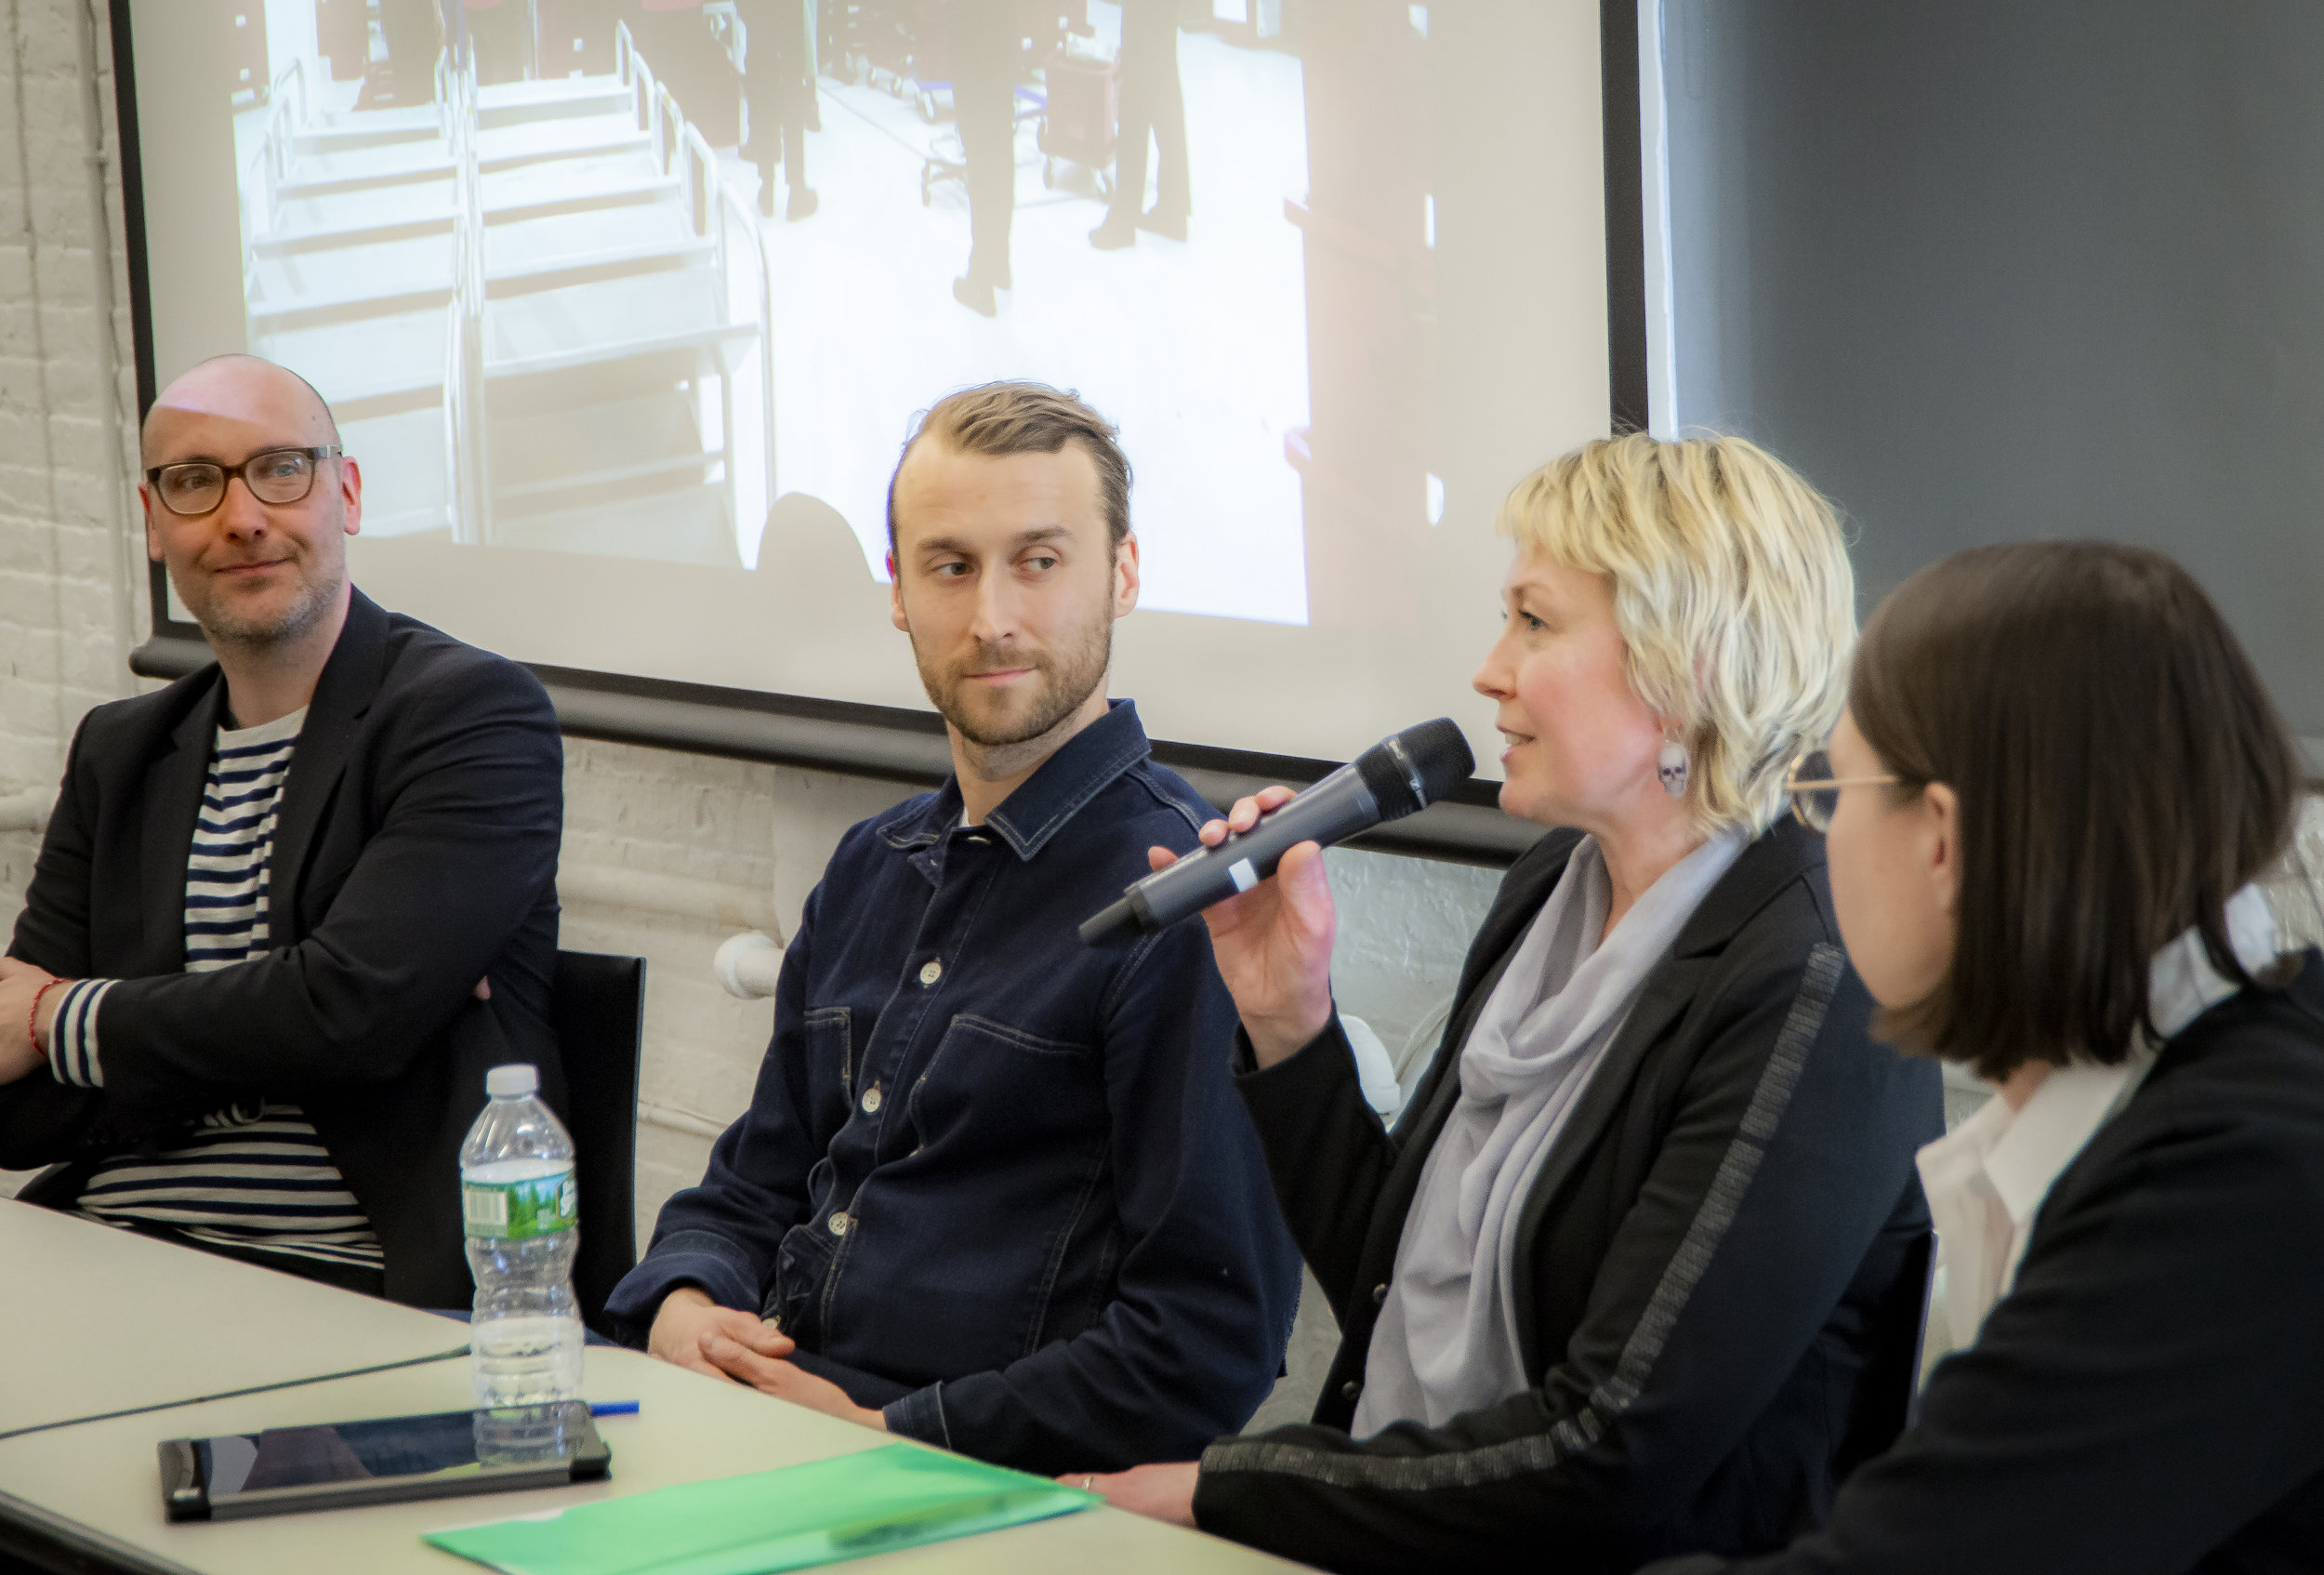 Jussi Parikka, Ilari Laamanen, Laura Norris and Anni Vartola discussed the Library's Other Intelligences art project at Helsinki Central Library Oodi. Photo: Aidan Smith